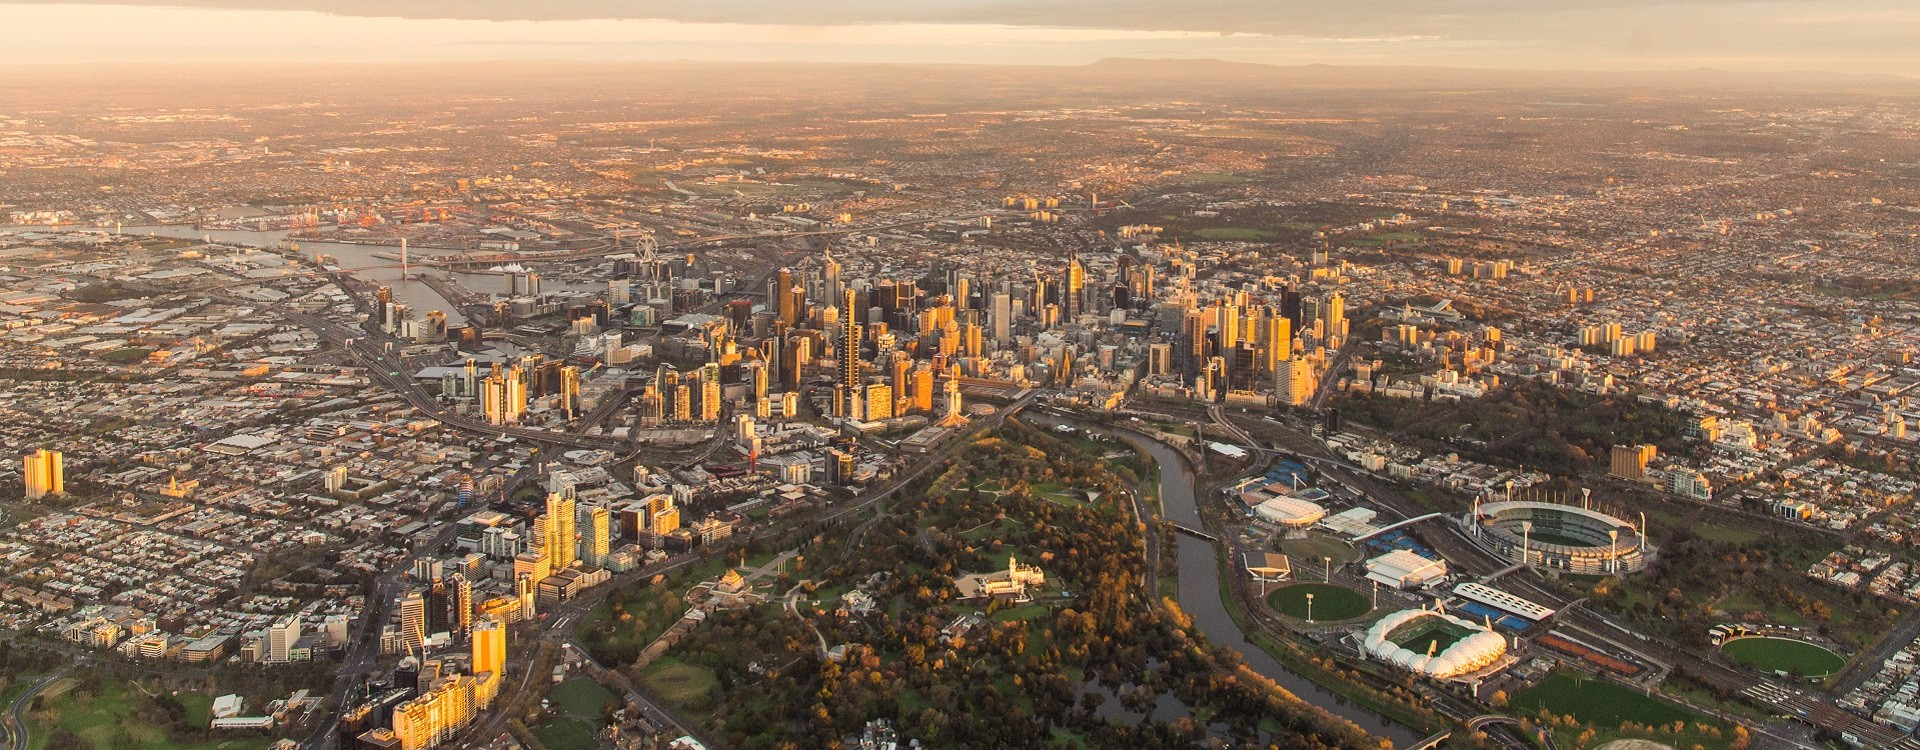 Melbourne is rated as one of the world's most liveable cities